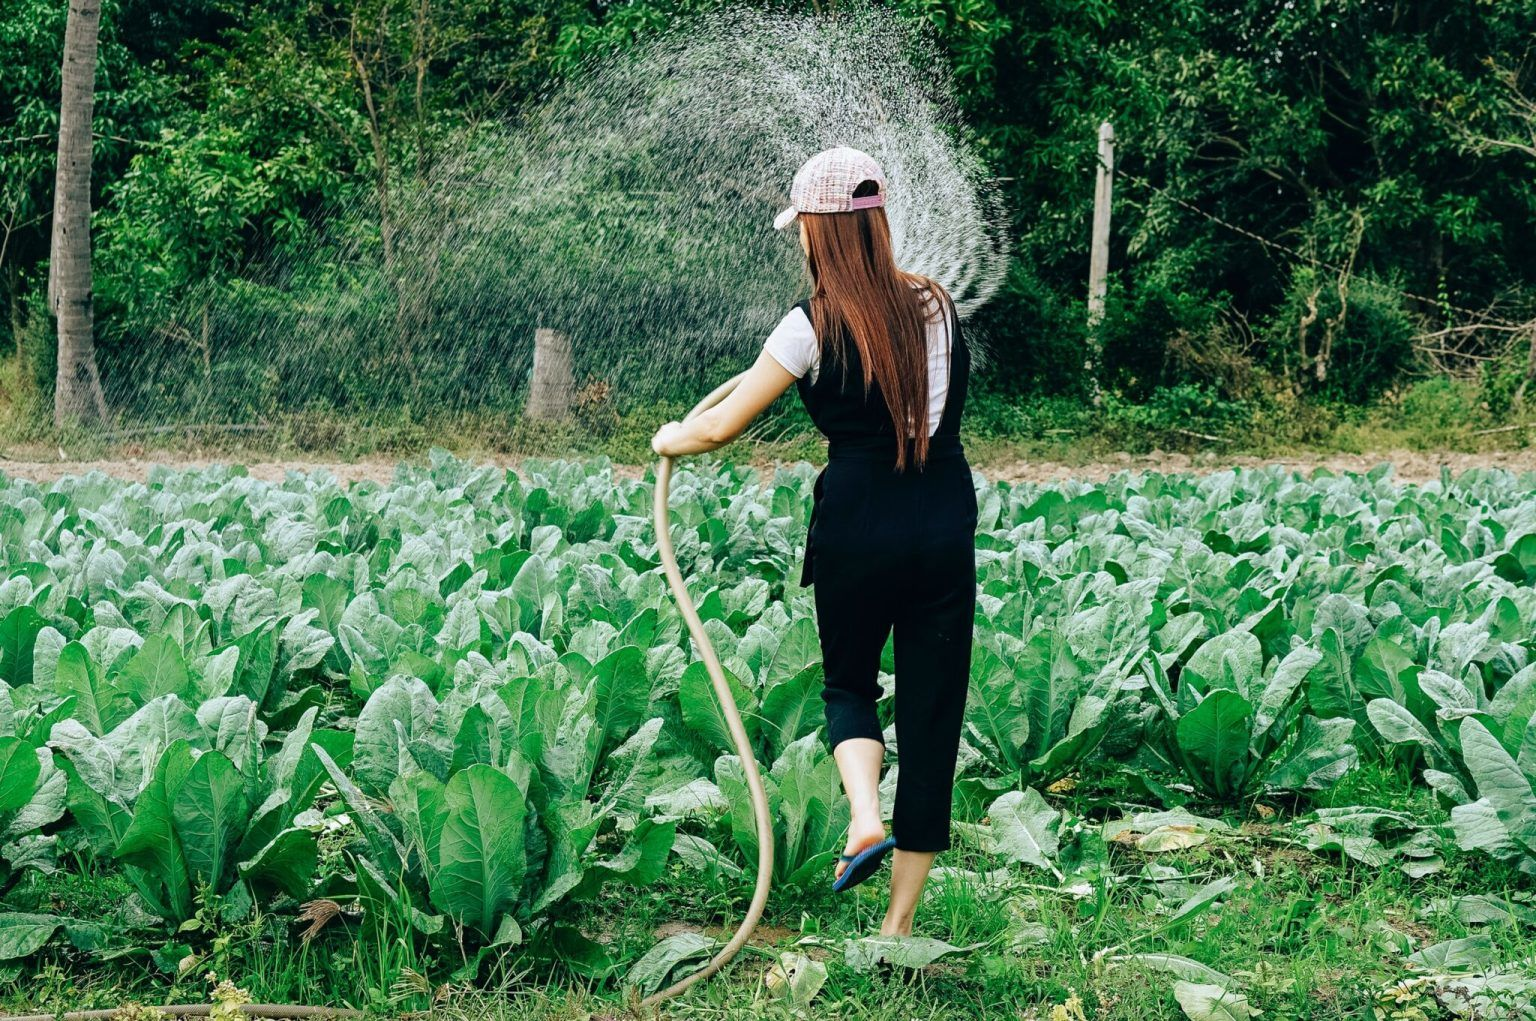 What role should organics play in sustainable food systems?